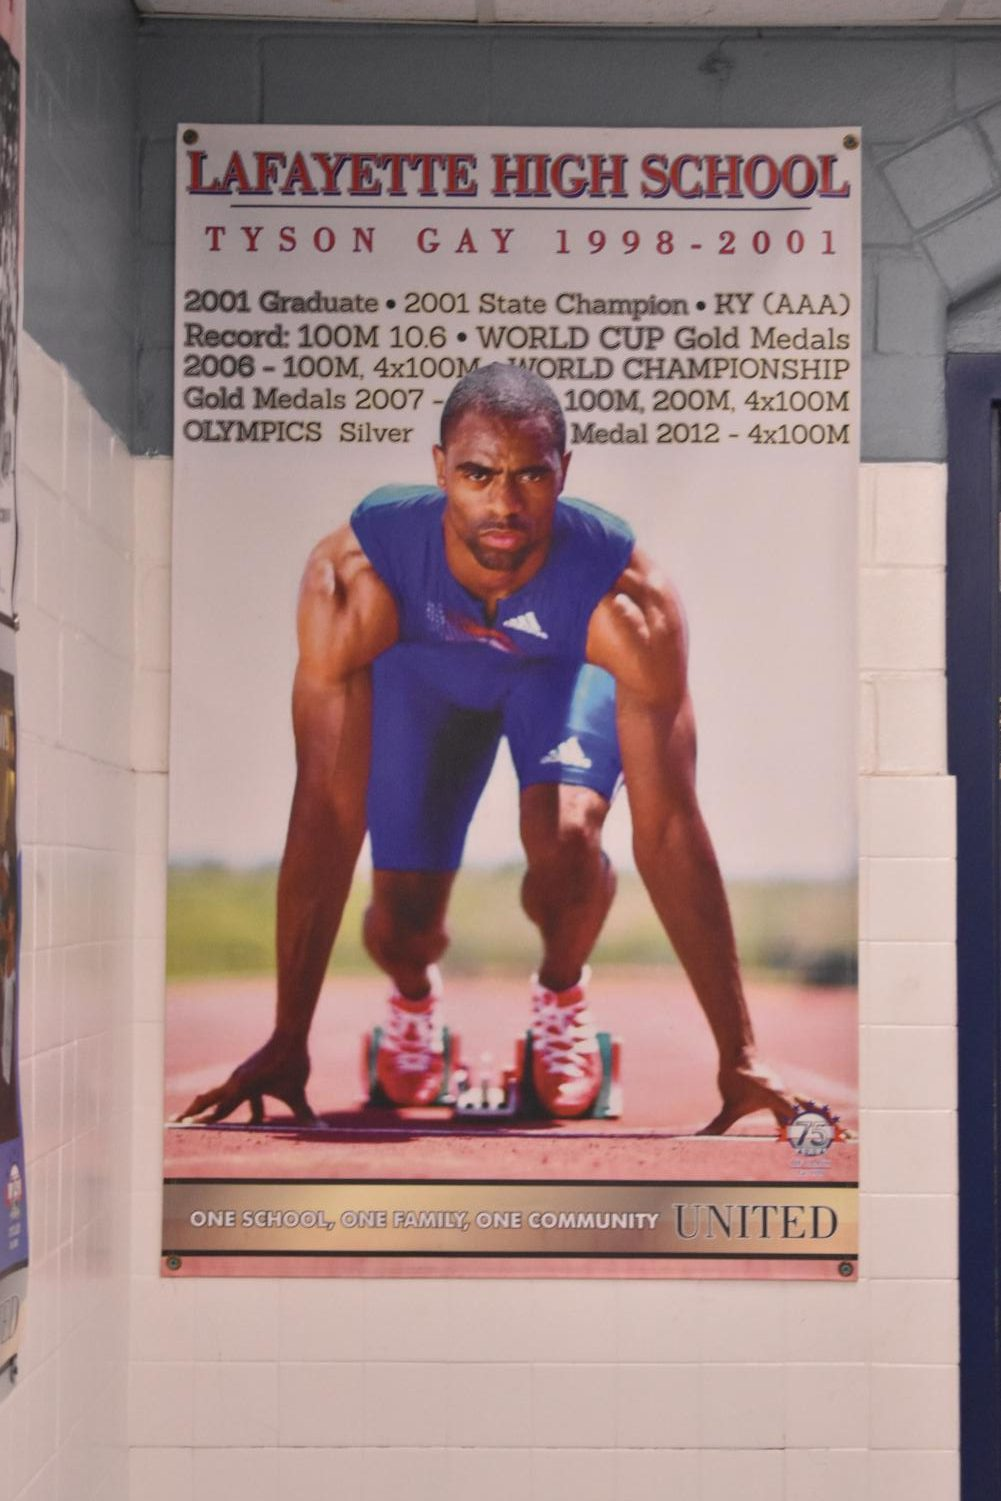 Banner in the hallway at Lafayette, featuring Tyson Gay